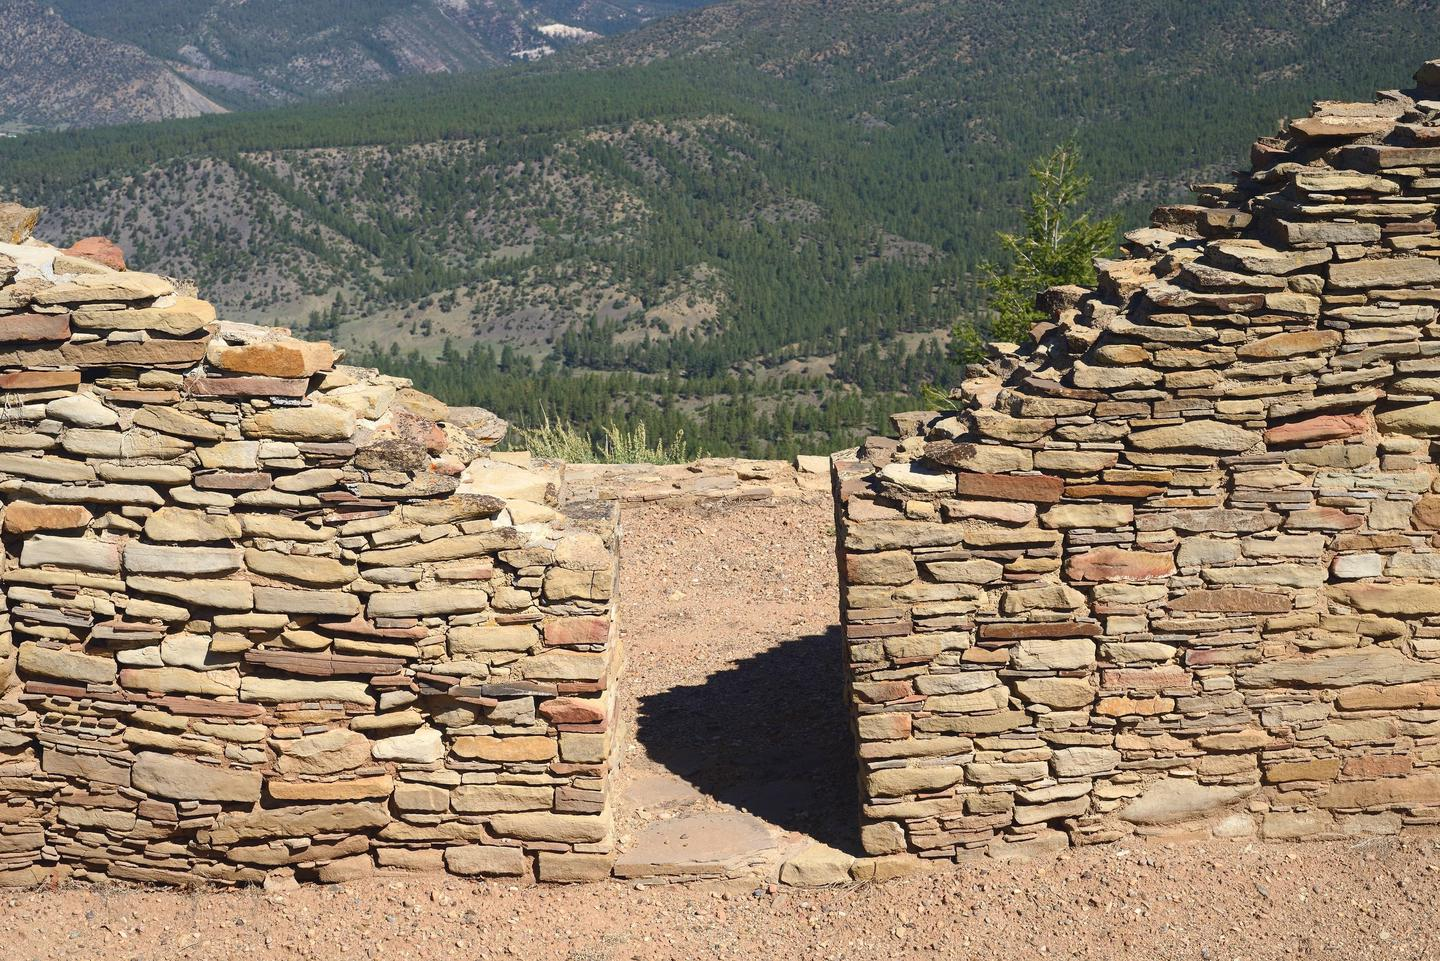 Guided tours of the Great House Pueblo of Chimney RockTrained volunteer interpretive guides will bring this beautiful site to life so you can visualize what it might have been like to live here 1,000 years ago.